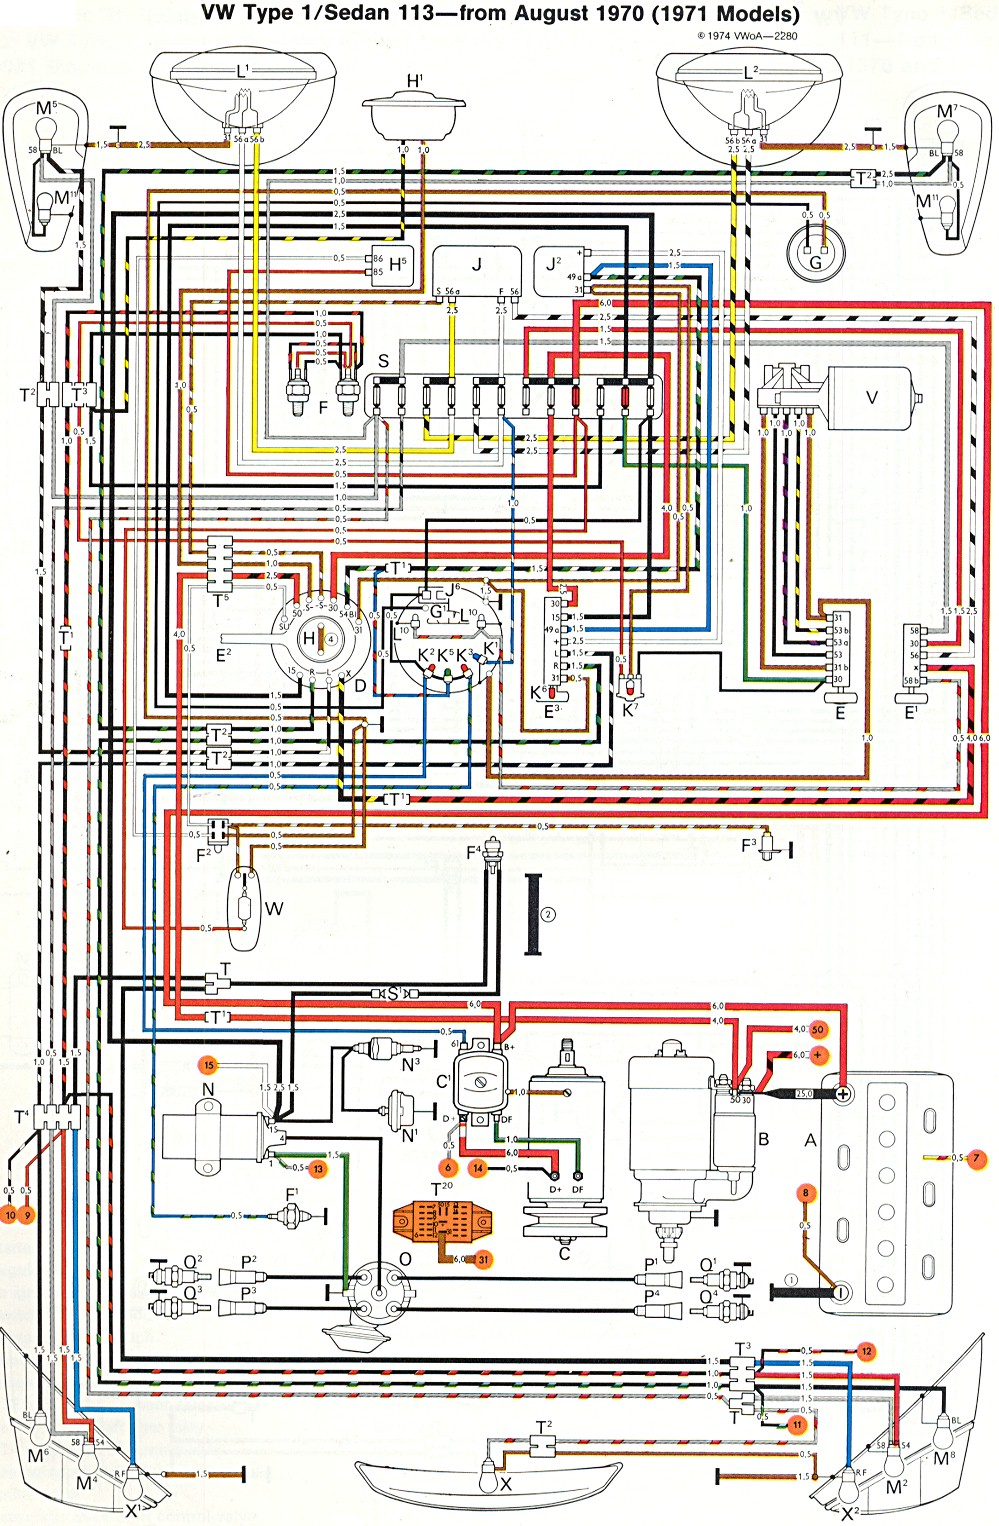 1971 Vw Bug Wiring Harness - Wiring Diagram Dash Vw Beetle Charging System Wiring Diagram on 1963 vw wiring diagram, vw beetle fuel injection diagram, 1999 vw passat wiring diagram, 1967 vw wiring diagram, 1974 vw engine diagram, alfa romeo spider wiring diagram, vw rabbit wiring-diagram, vw turn signal wiring diagram, vw distributor diagram, fiat uno wiring diagram, vw buggy wiring-diagram, volkswagen fuel diagram, 1973 vw wiring diagram, porsche cayenne wiring diagram, vw starter wiring diagram, vw type 2 wiring diagram, vw beetle engine diagram, 68 vw wiring diagram, type 3 wiring diagram, vw light switch wiring,